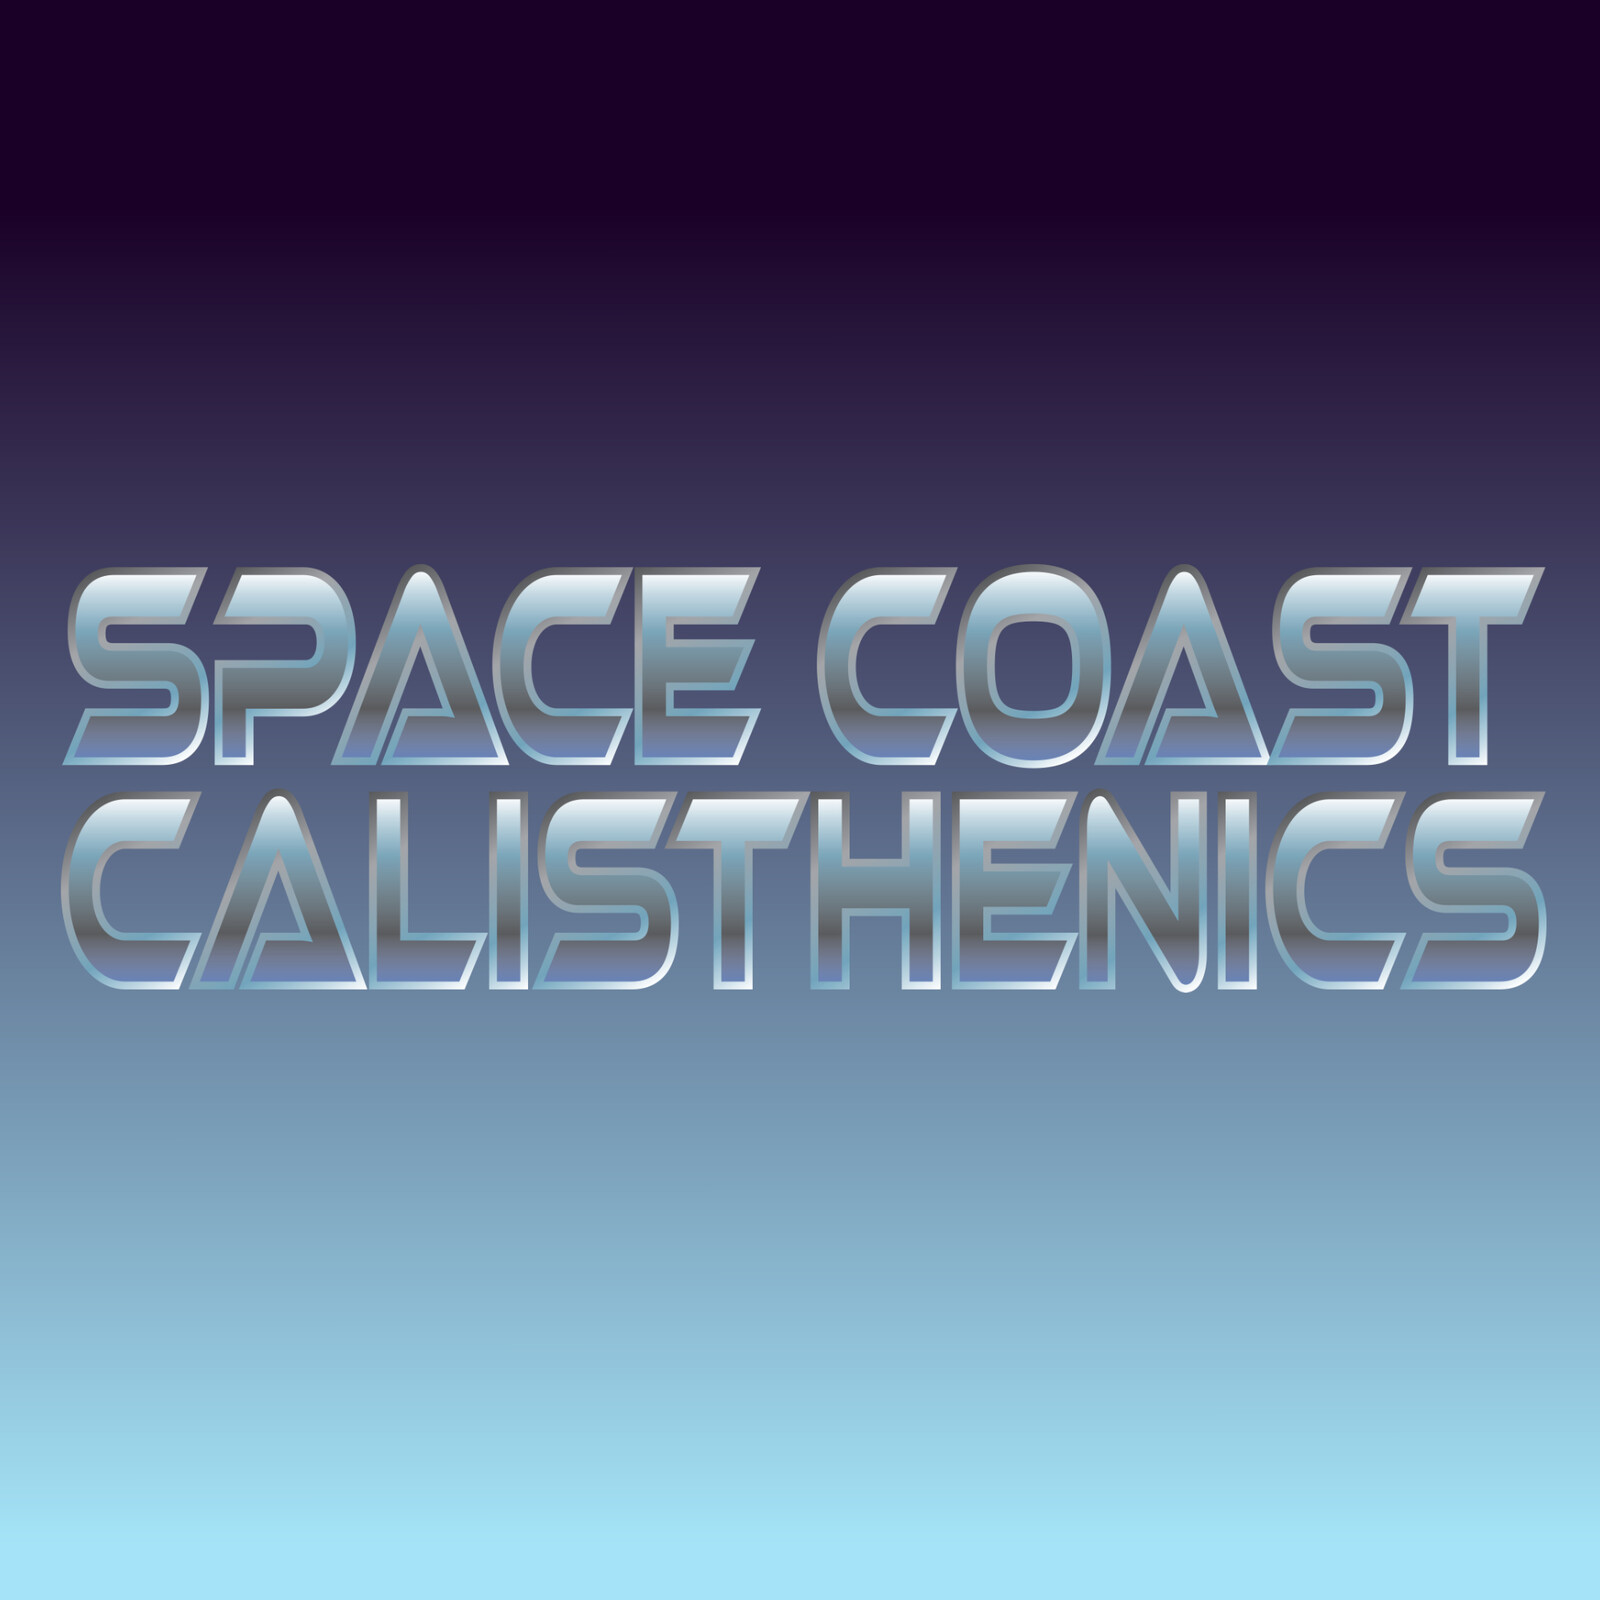 Space Coast Calisthenics Logo Design